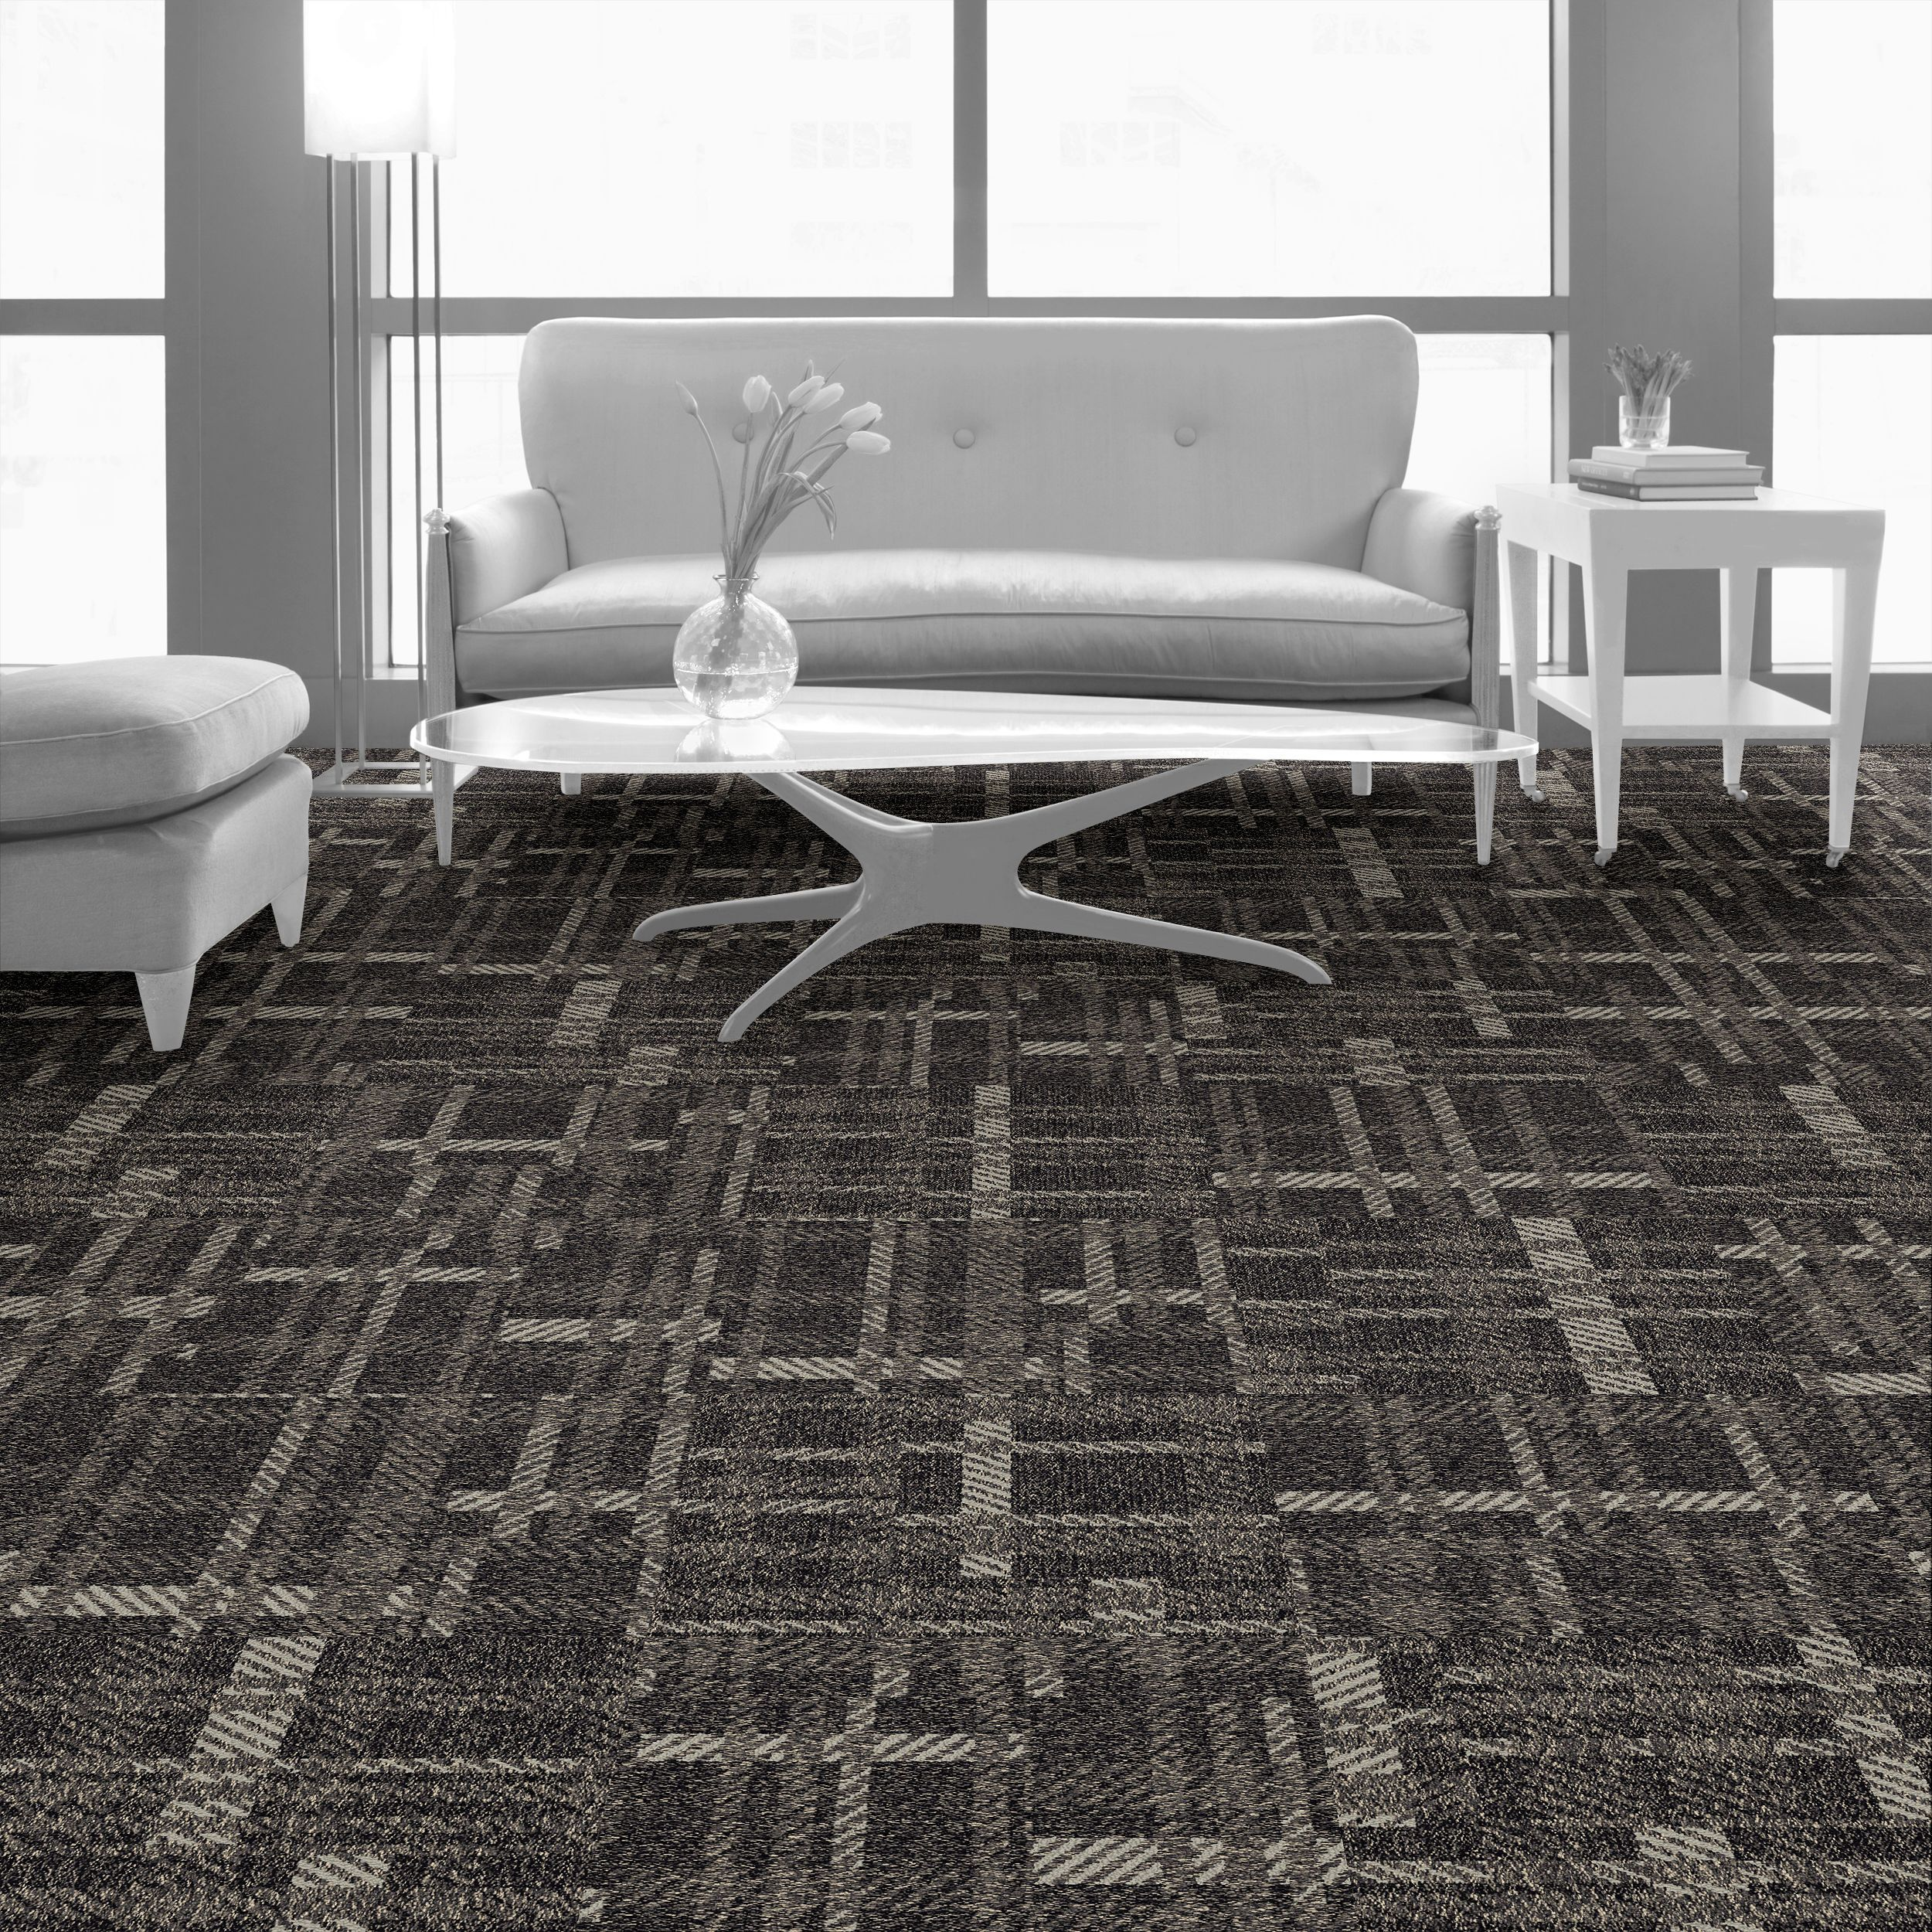 Interface carpet tile: Scottish Sett Color: Plaid Raffia 8151007 Installation method: Non Directional         Room scene: Lounge